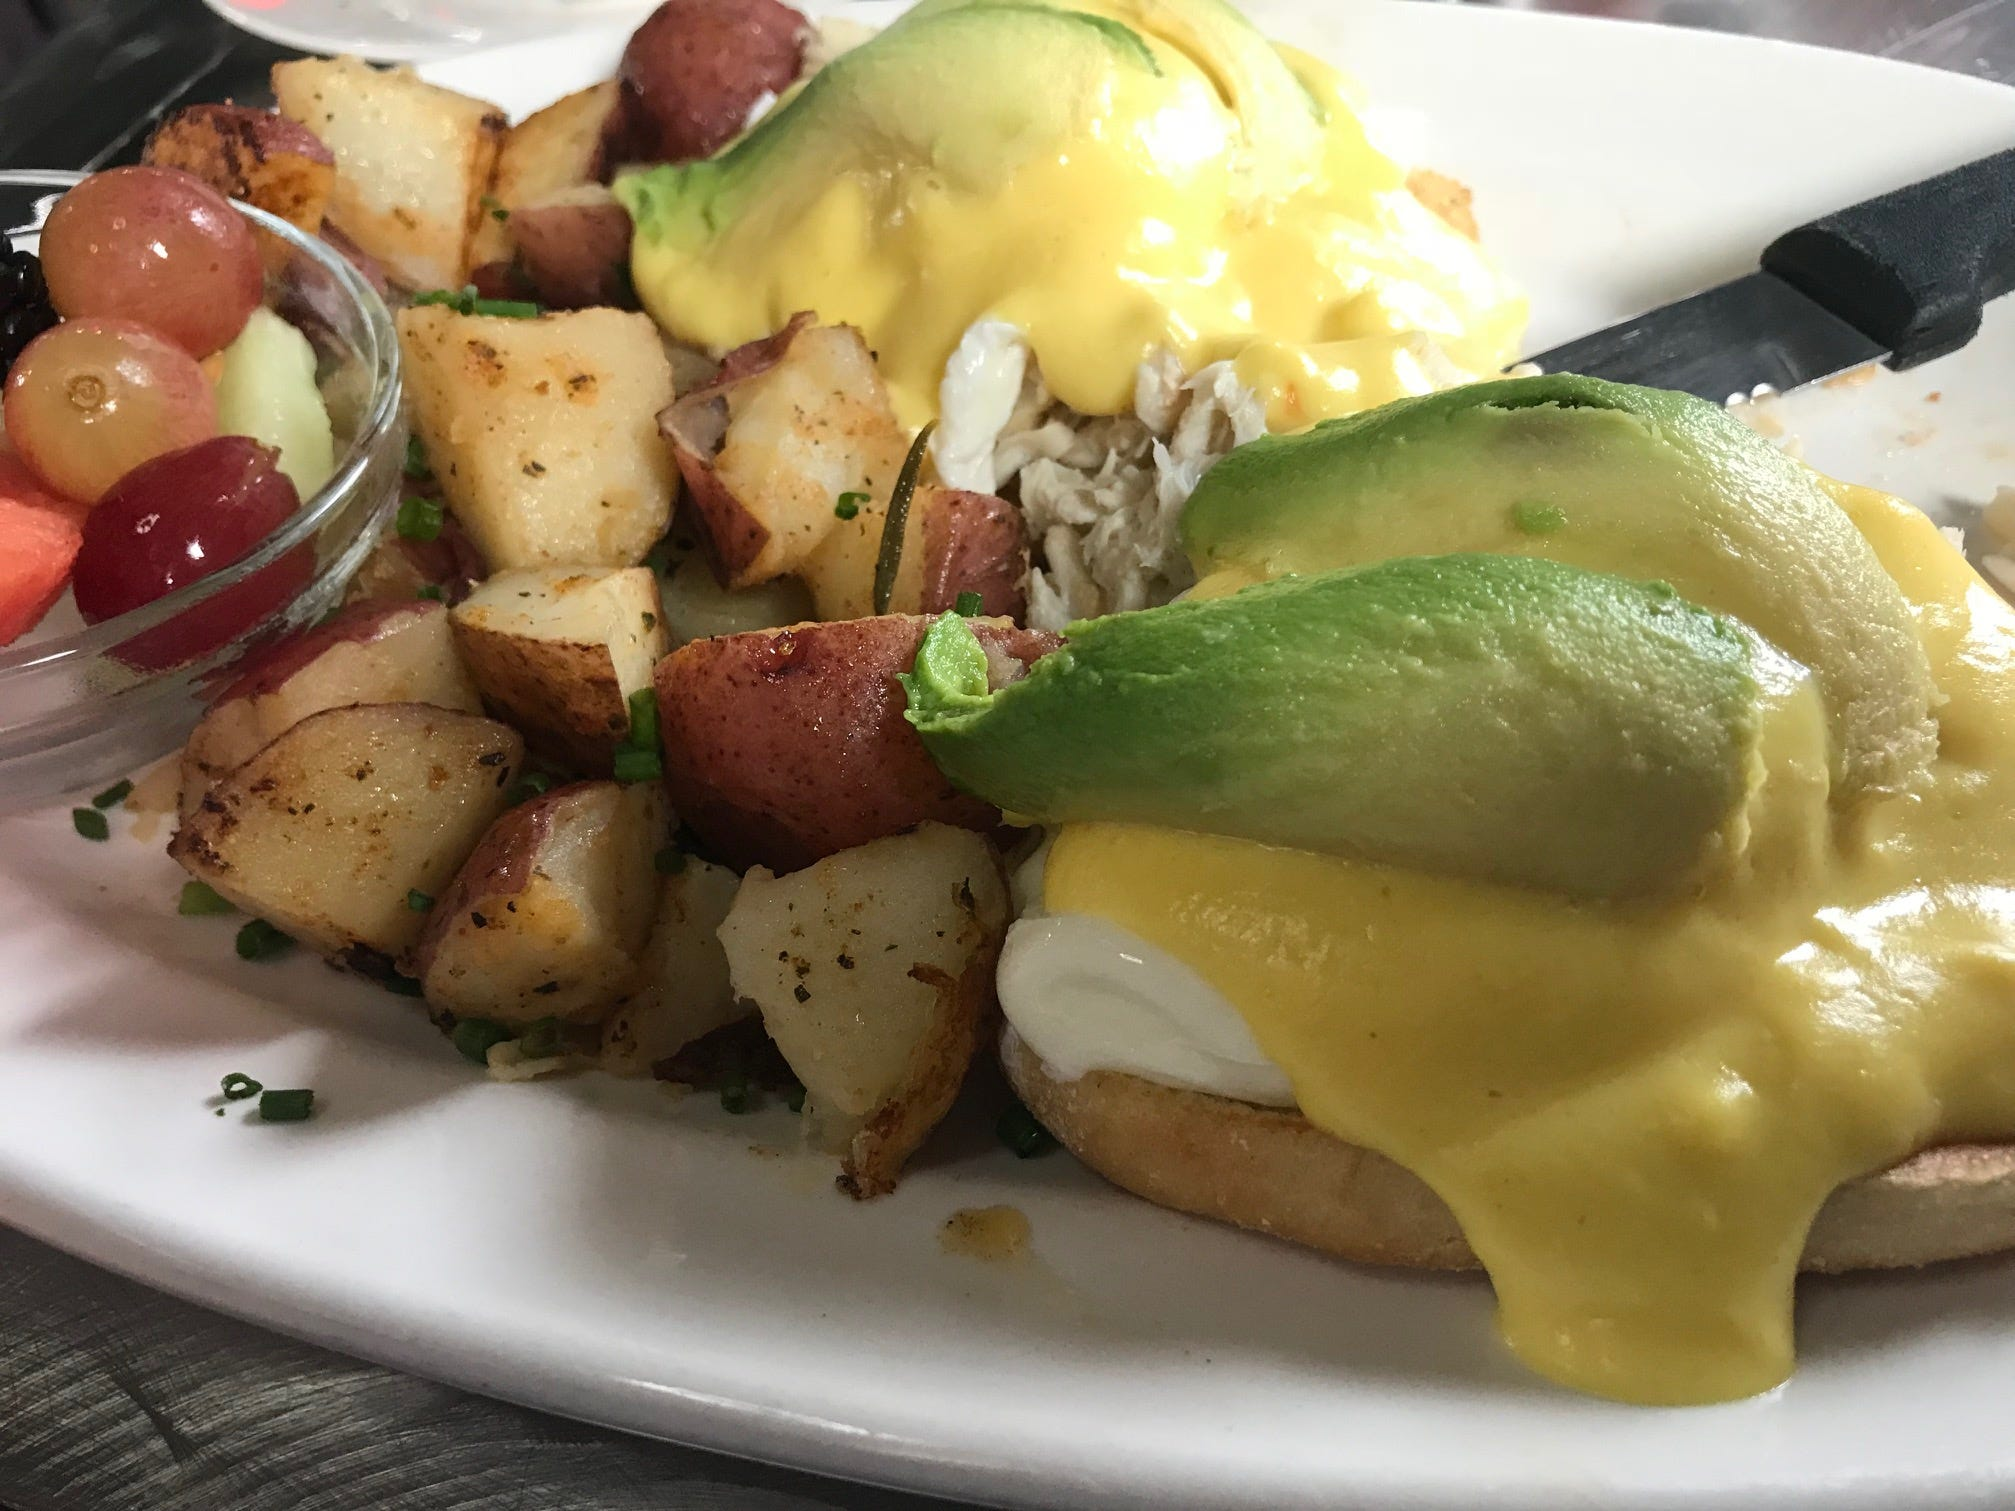 One variation on eggs Benedict at Fiesta Cafe is crabmeat with avocado, served with potatoes and fruit.